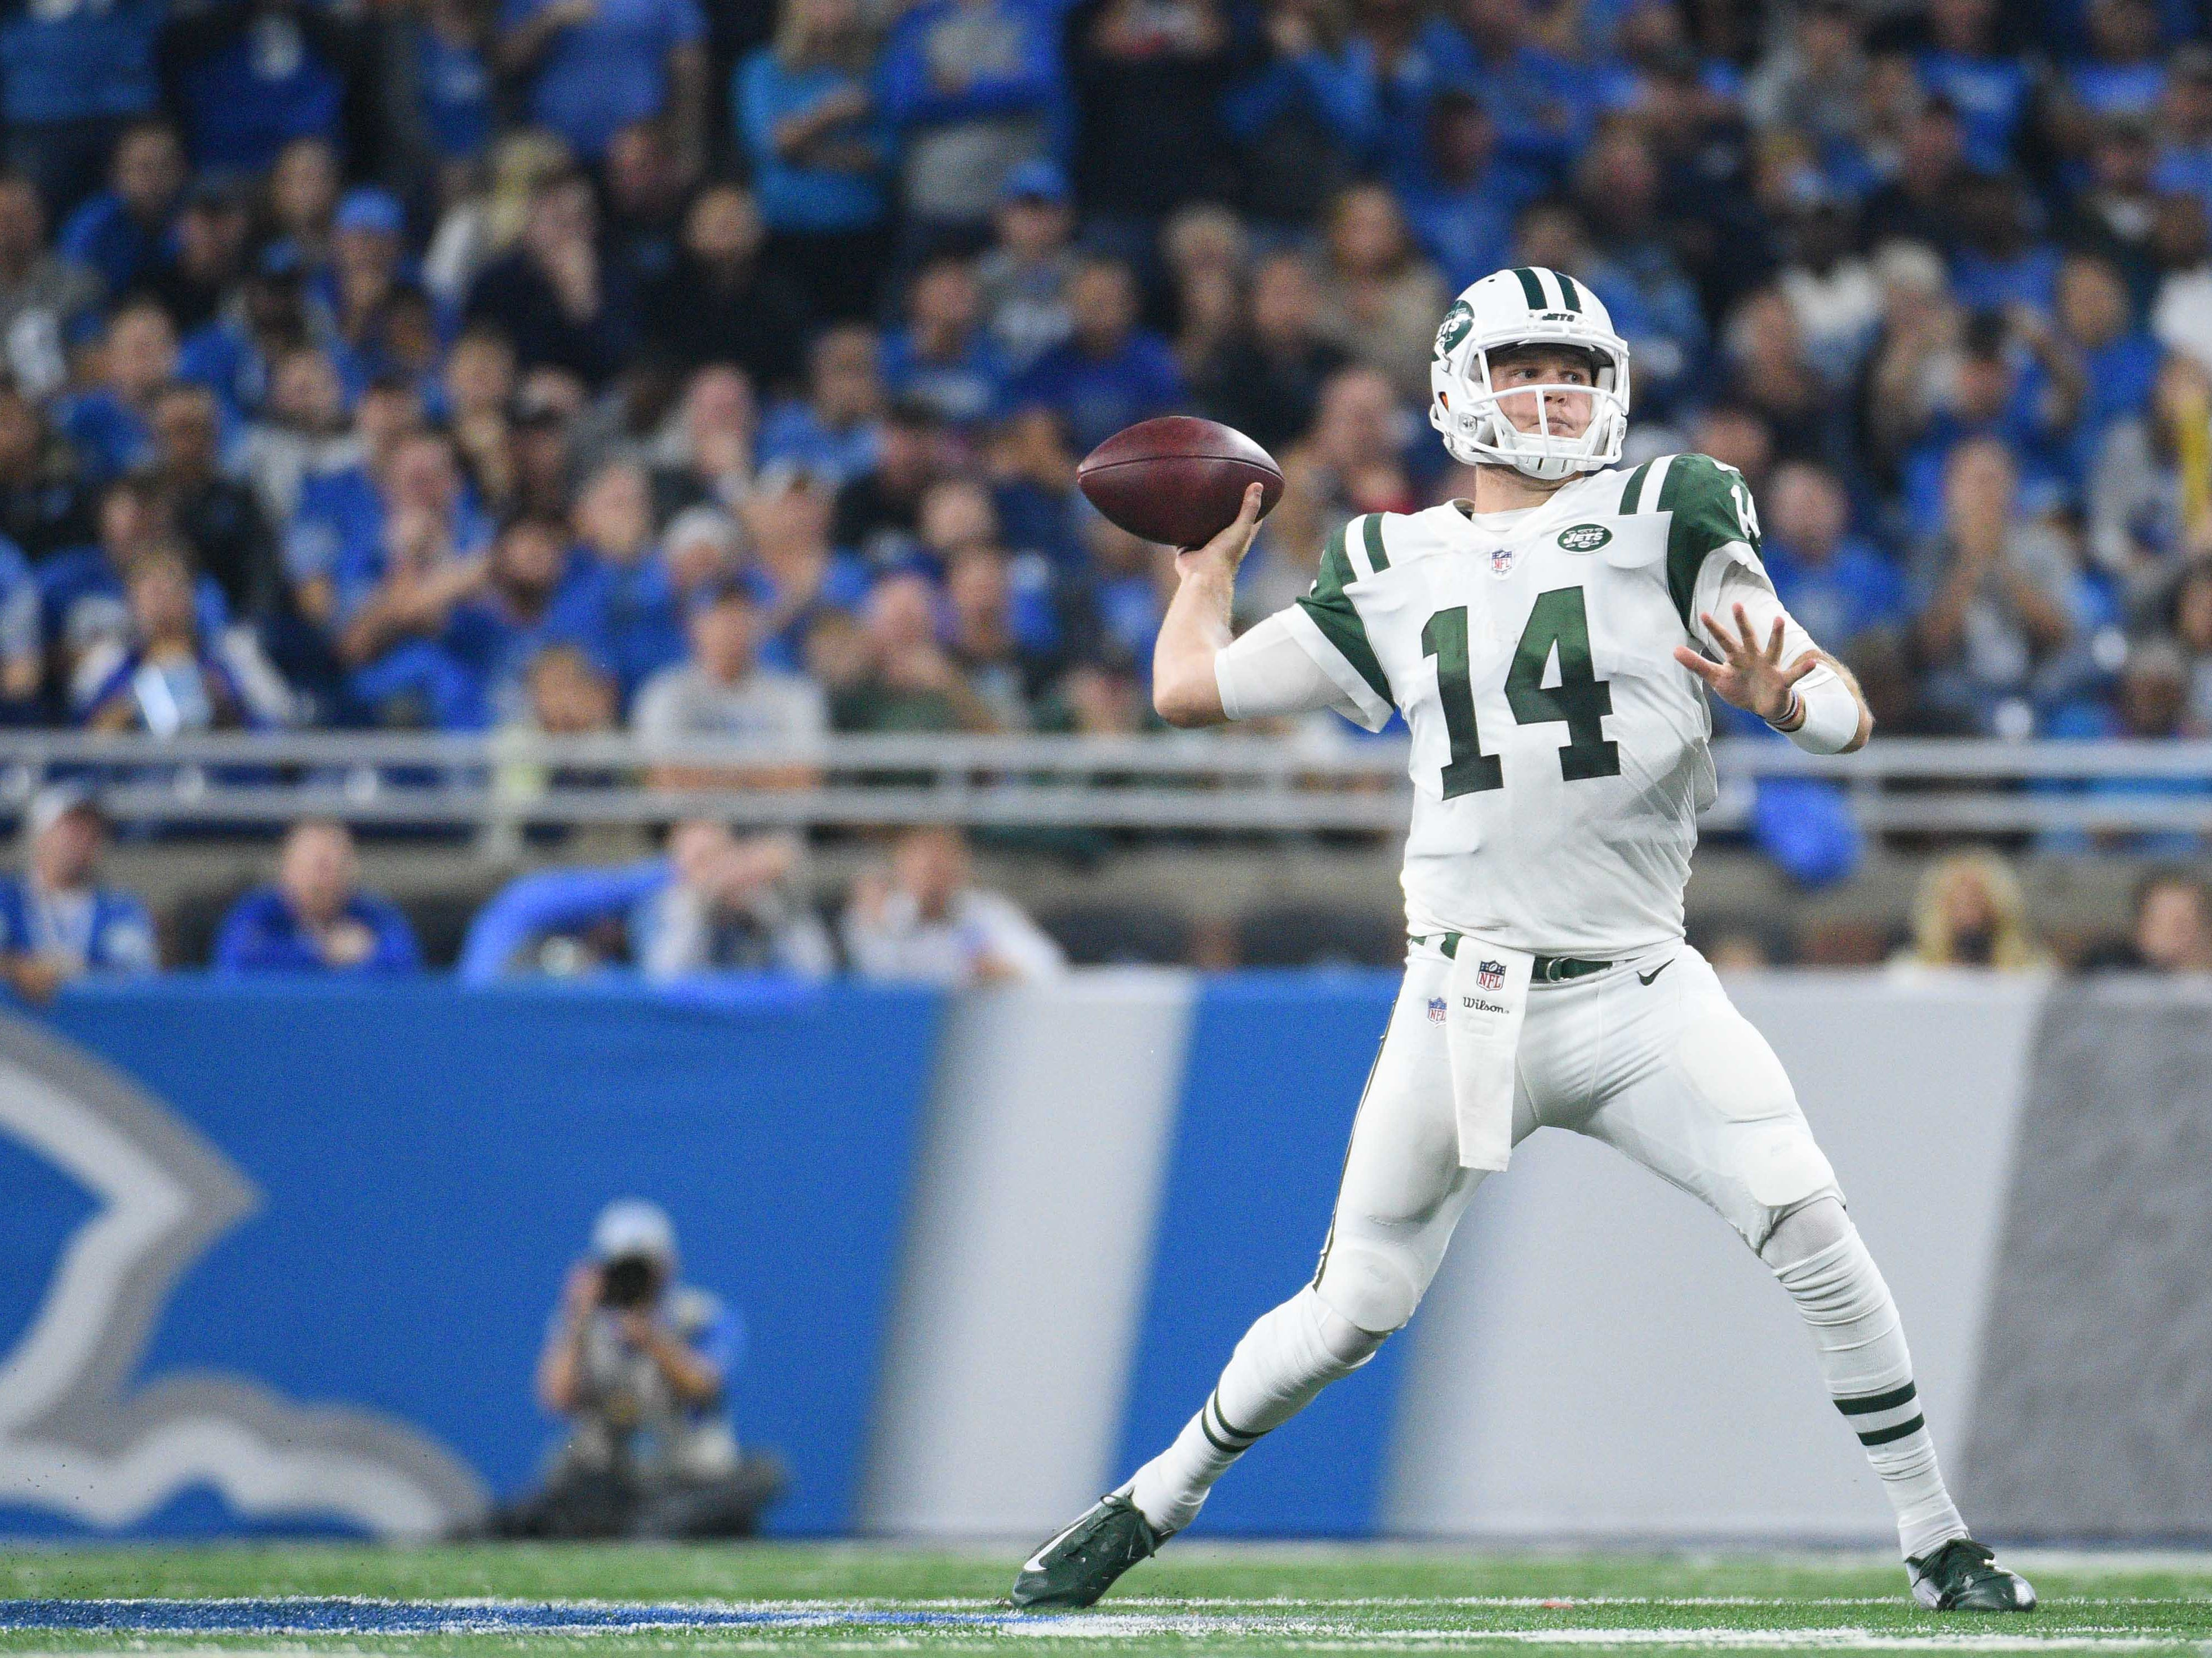 Sep 10, 2018; Detroit, MI, USA; New York Jets quarterback Sam Darnold (14) drops back to pass during the second quarter against the Detroit Lions at Ford Field. Mandatory Credit: Tim Fuller-USA TODAY Sports